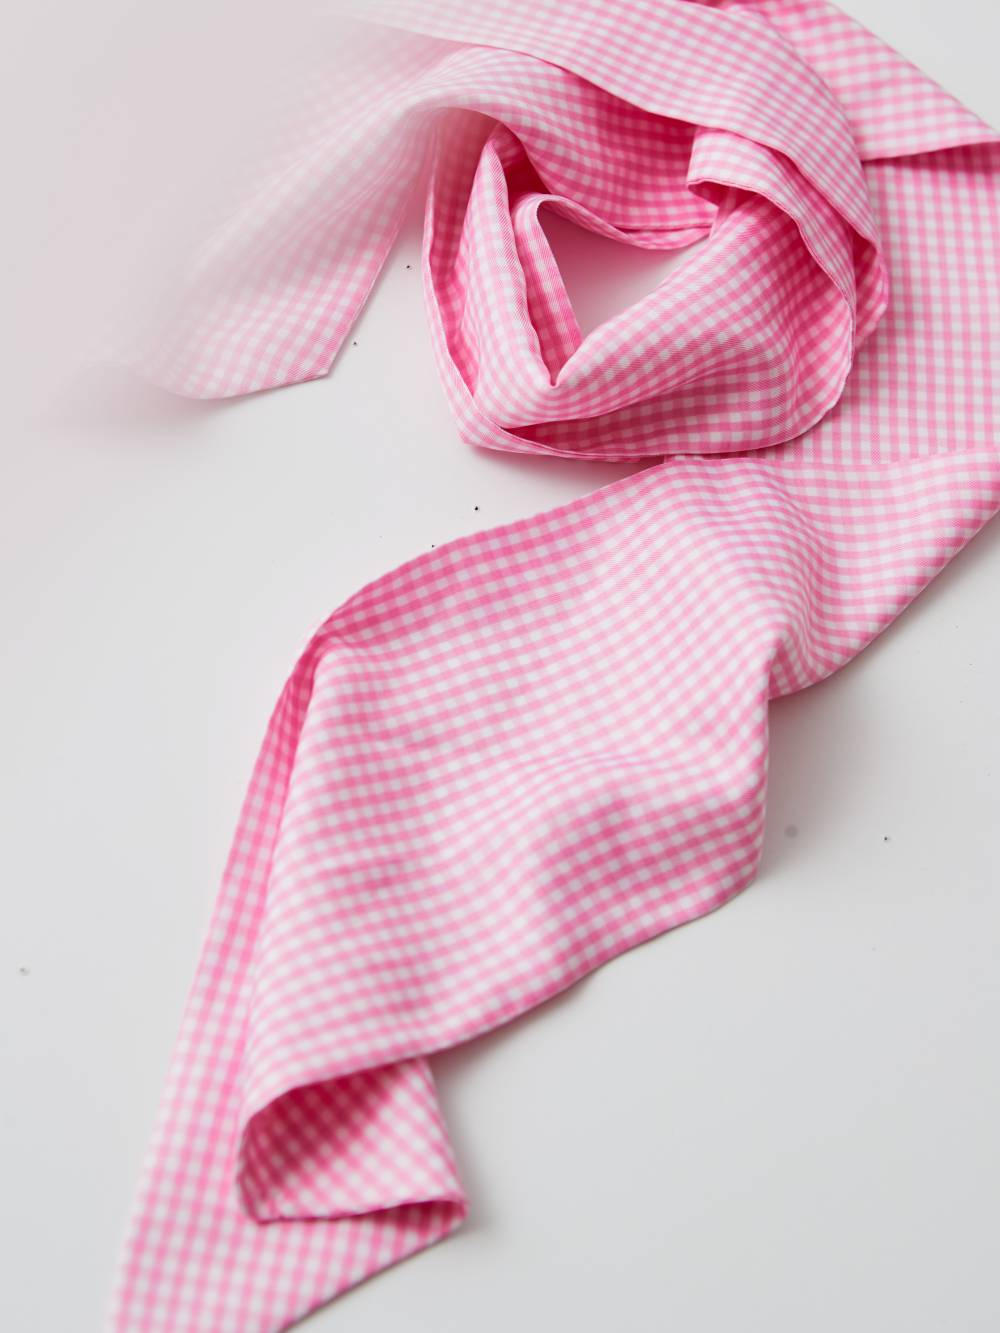 gingham, pink, valentine's day, neckerchief, accessories